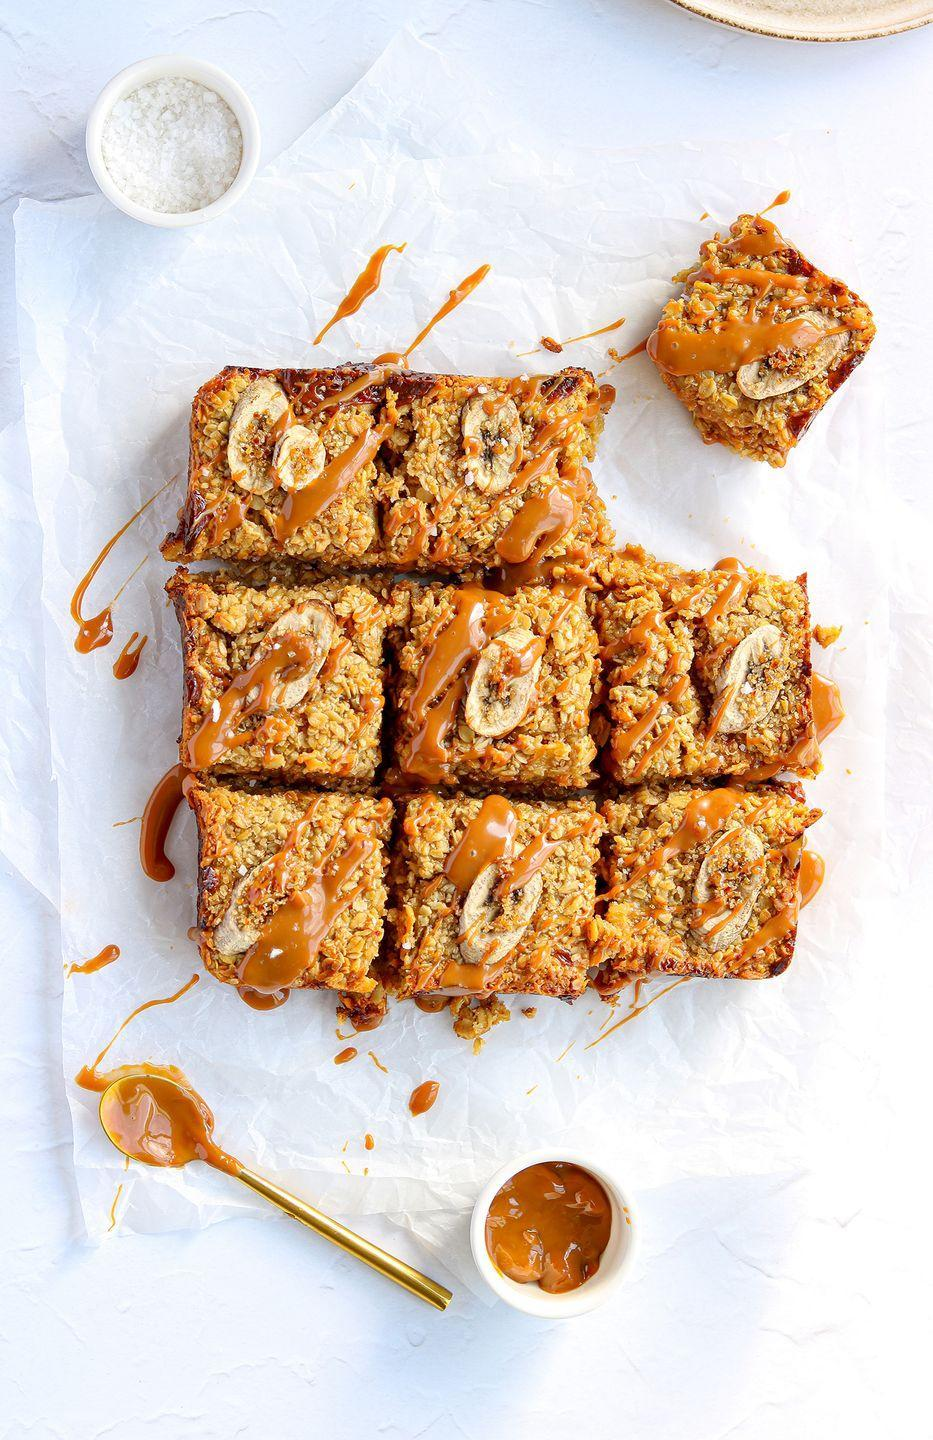 """<p>Banana <a href=""""https://www.delish.com/uk/cooking/recipes/a35486970/vegan-flapjacks/"""" rel=""""nofollow noopener"""" target=""""_blank"""" data-ylk=""""slk:flapjacks"""" class=""""link rapid-noclick-resp"""">flapjacks </a>are seriously tasty, especially when paired with <a href=""""https://www.delish.com/uk/cooking/recipes/g28842354/salted-caramel-desserts/"""" rel=""""nofollow noopener"""" target=""""_blank"""" data-ylk=""""slk:salted caramel"""" class=""""link rapid-noclick-resp"""">salted caramel</a>. We've added mashed <a href=""""https://www.delish.com/uk/cooking/recipes/g28843835/banana-bread-recipes/"""" rel=""""nofollow noopener"""" target=""""_blank"""" data-ylk=""""slk:bananas"""" class=""""link rapid-noclick-resp"""">bananas </a>to the oat mixture and sprinkled on top for added banana goodness. </p><p>Get the <a href=""""https://www.delish.com/uk/cooking/recipes/a35487496/banana-flapjack/"""" rel=""""nofollow noopener"""" target=""""_blank"""" data-ylk=""""slk:Caramelised Banana Flapjack"""" class=""""link rapid-noclick-resp"""">Caramelised Banana Flapjack</a> recipe</p>"""